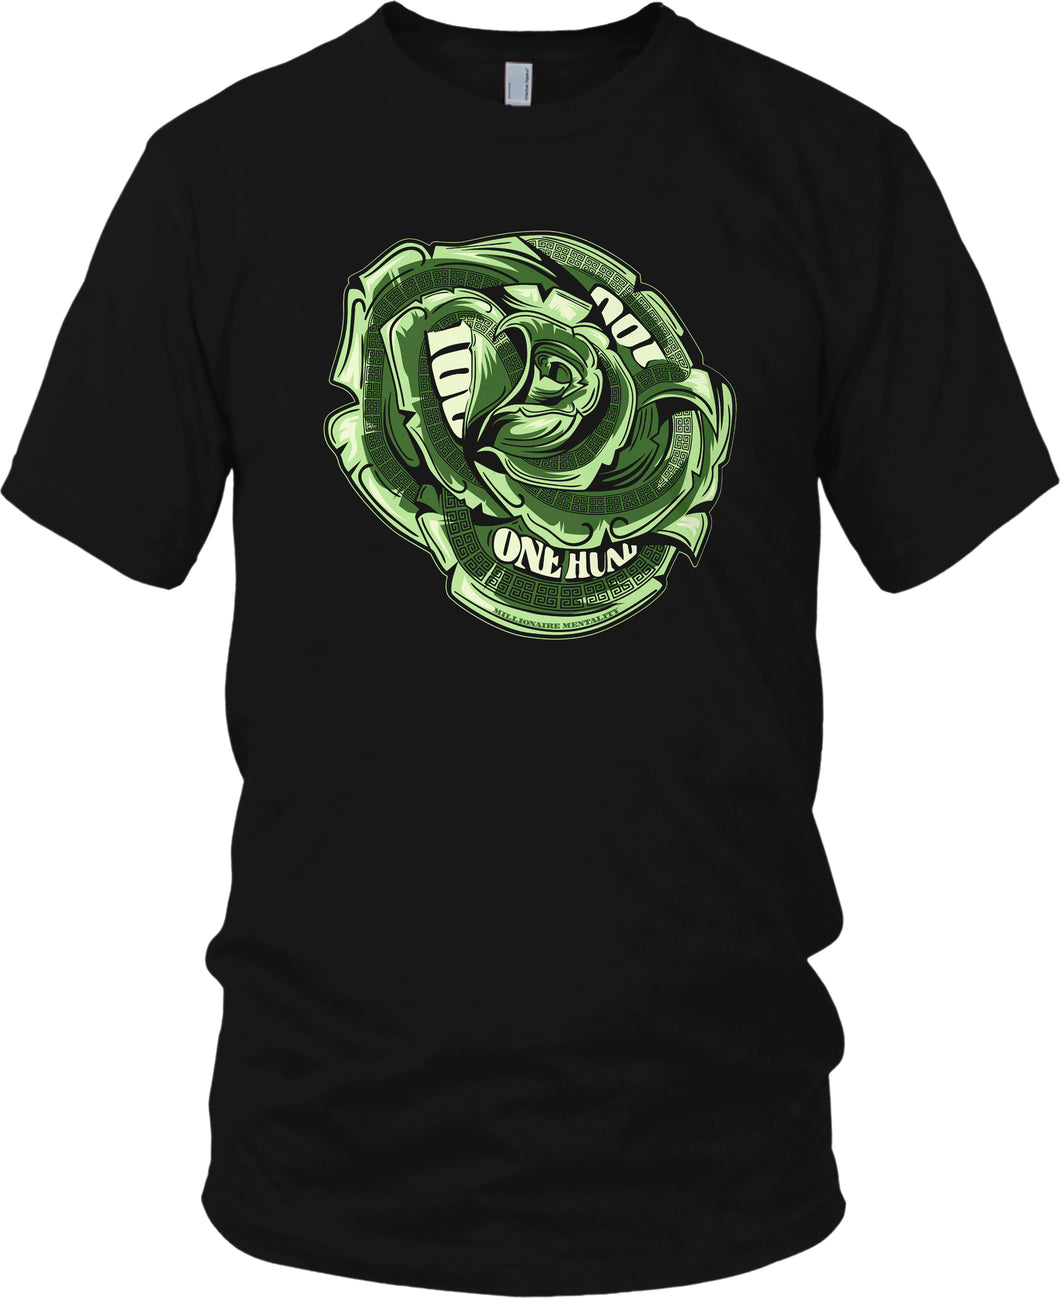 MILLIONAIRE MENTALITY GREEN MONEY ROSE BLACK T-SHIRT (LIMITED EDITION)